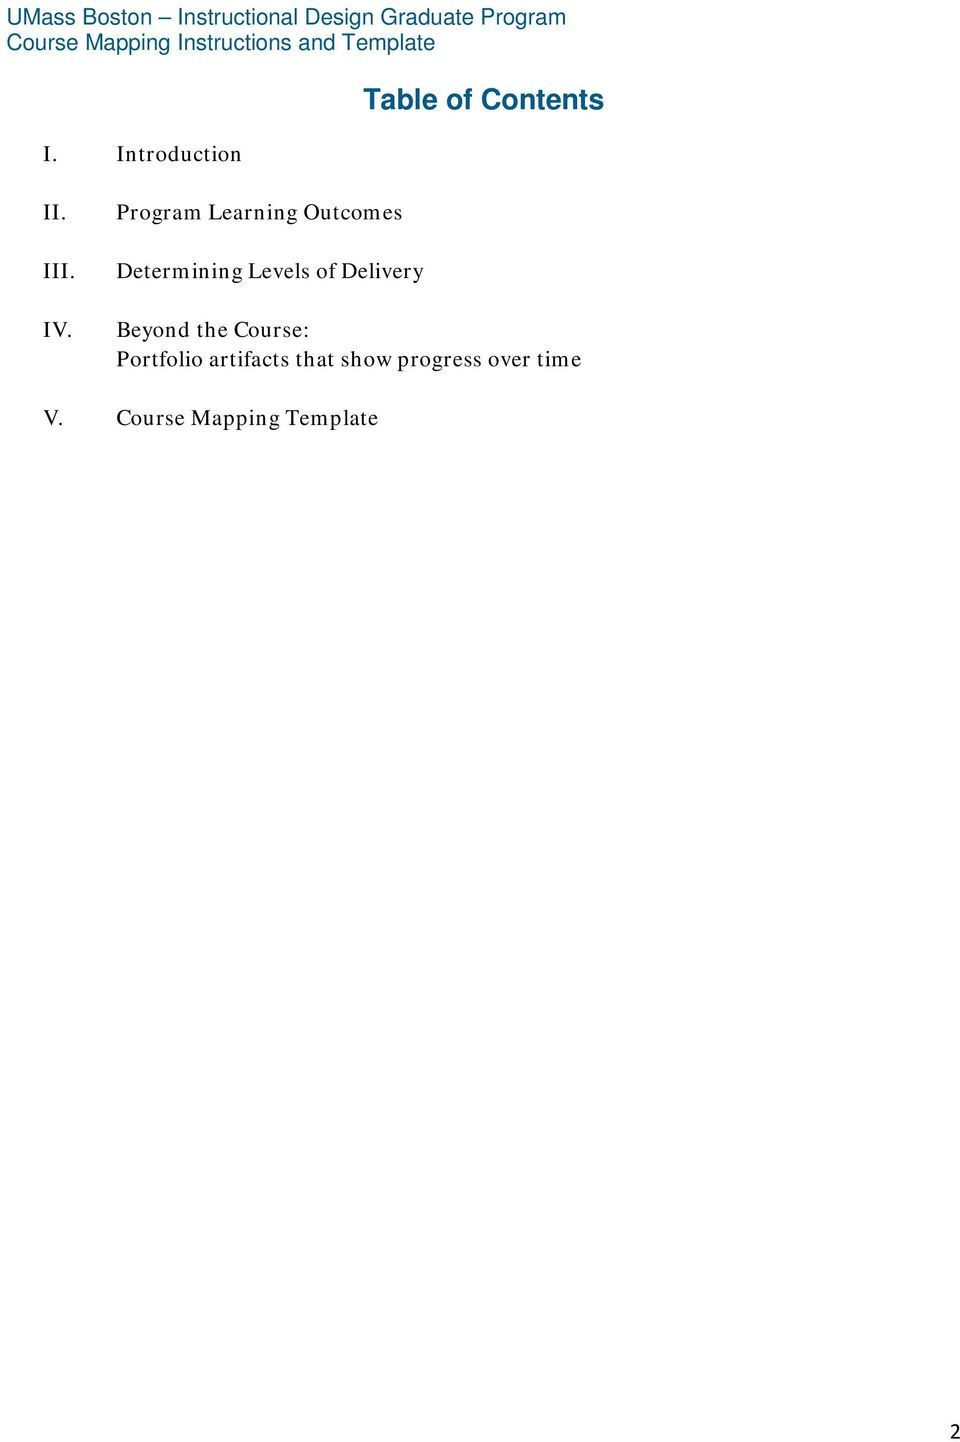 course mapping instructions and template pdf